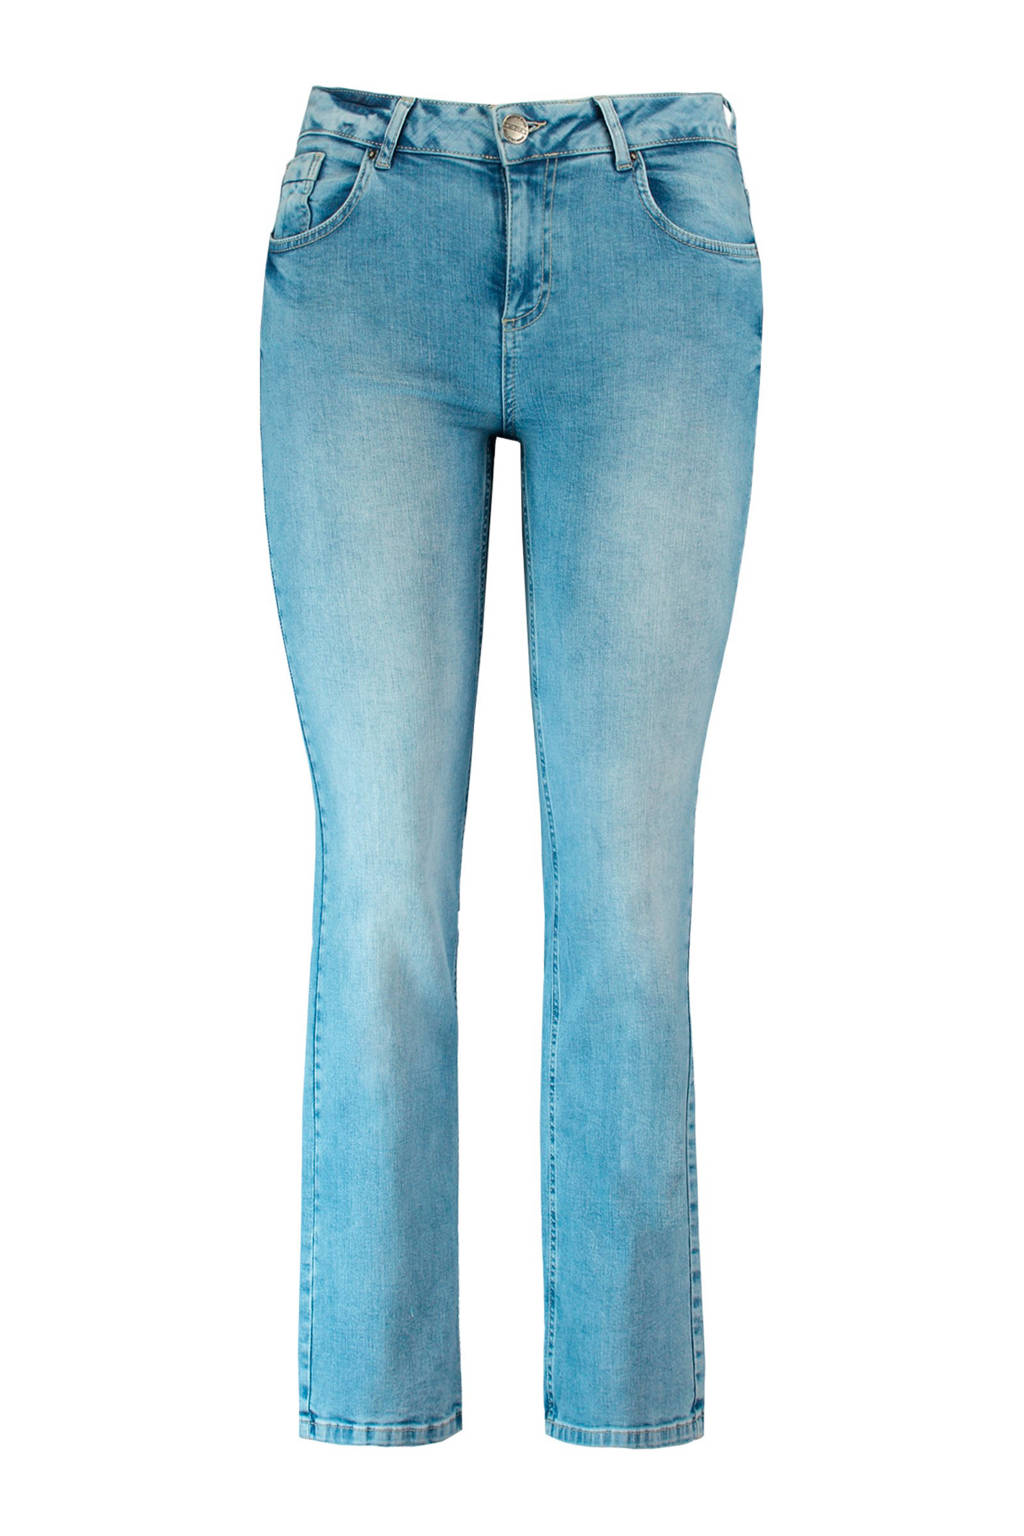 MS Mode straight fit jeans, Bleached denim